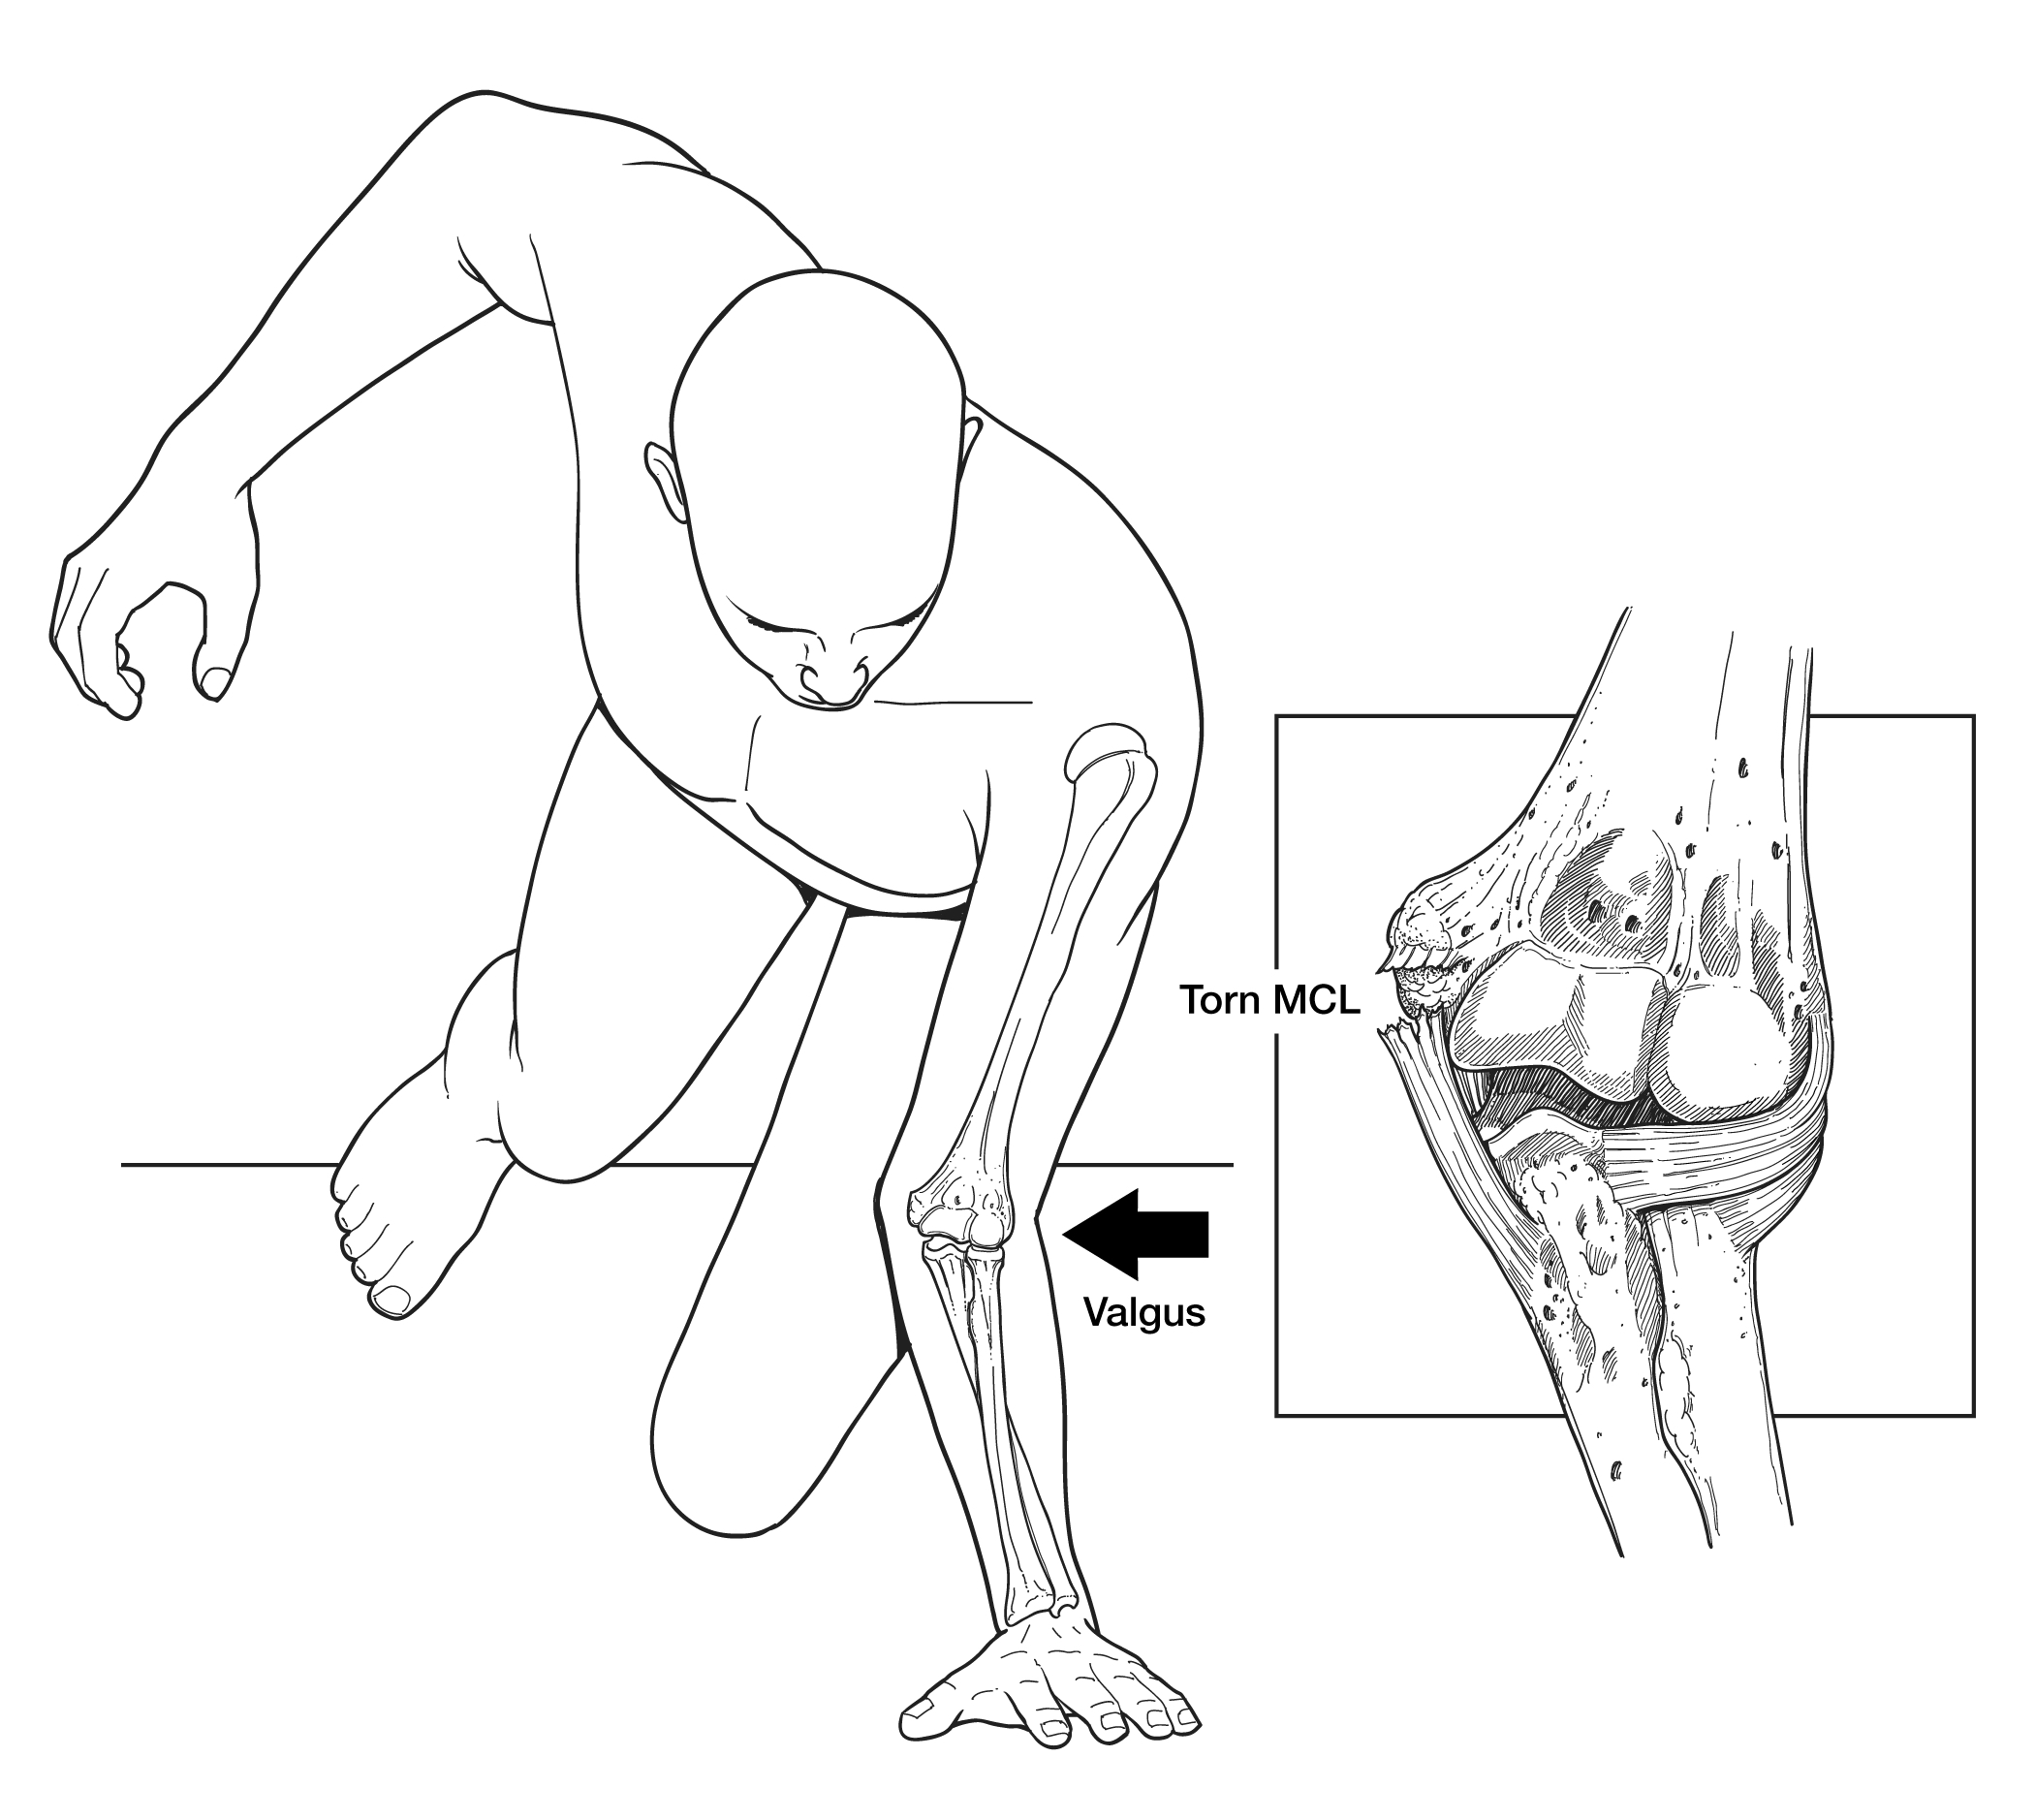 Falling onto an outstretched arm can result in tearing of the elbow's collateral ligaments. If the tear is severe enough, the elbow joint may subsequently dislocate